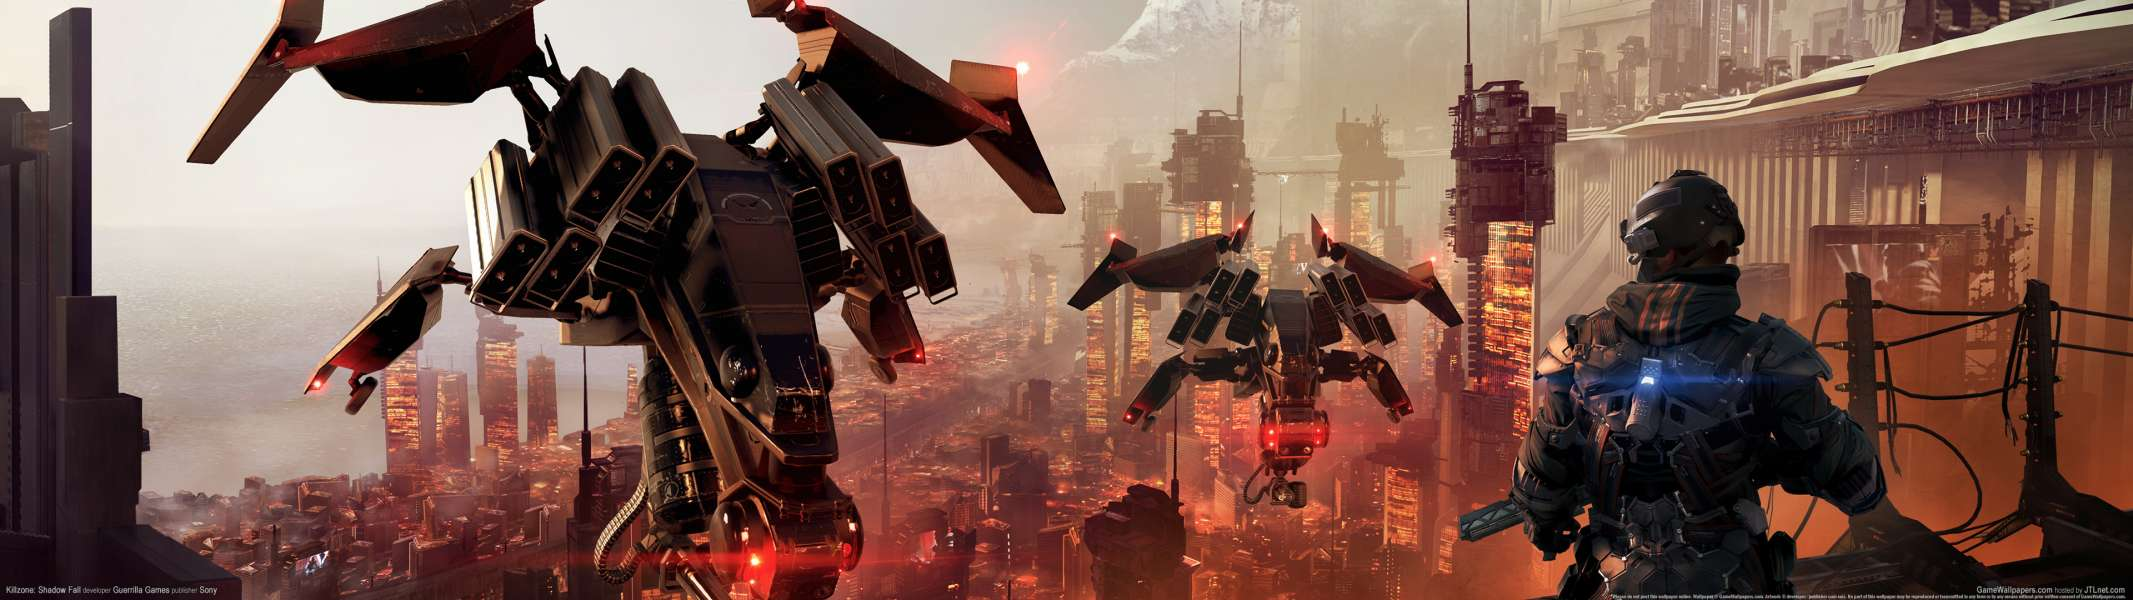 Killzone: Shadow Fall dual screen achtergrond